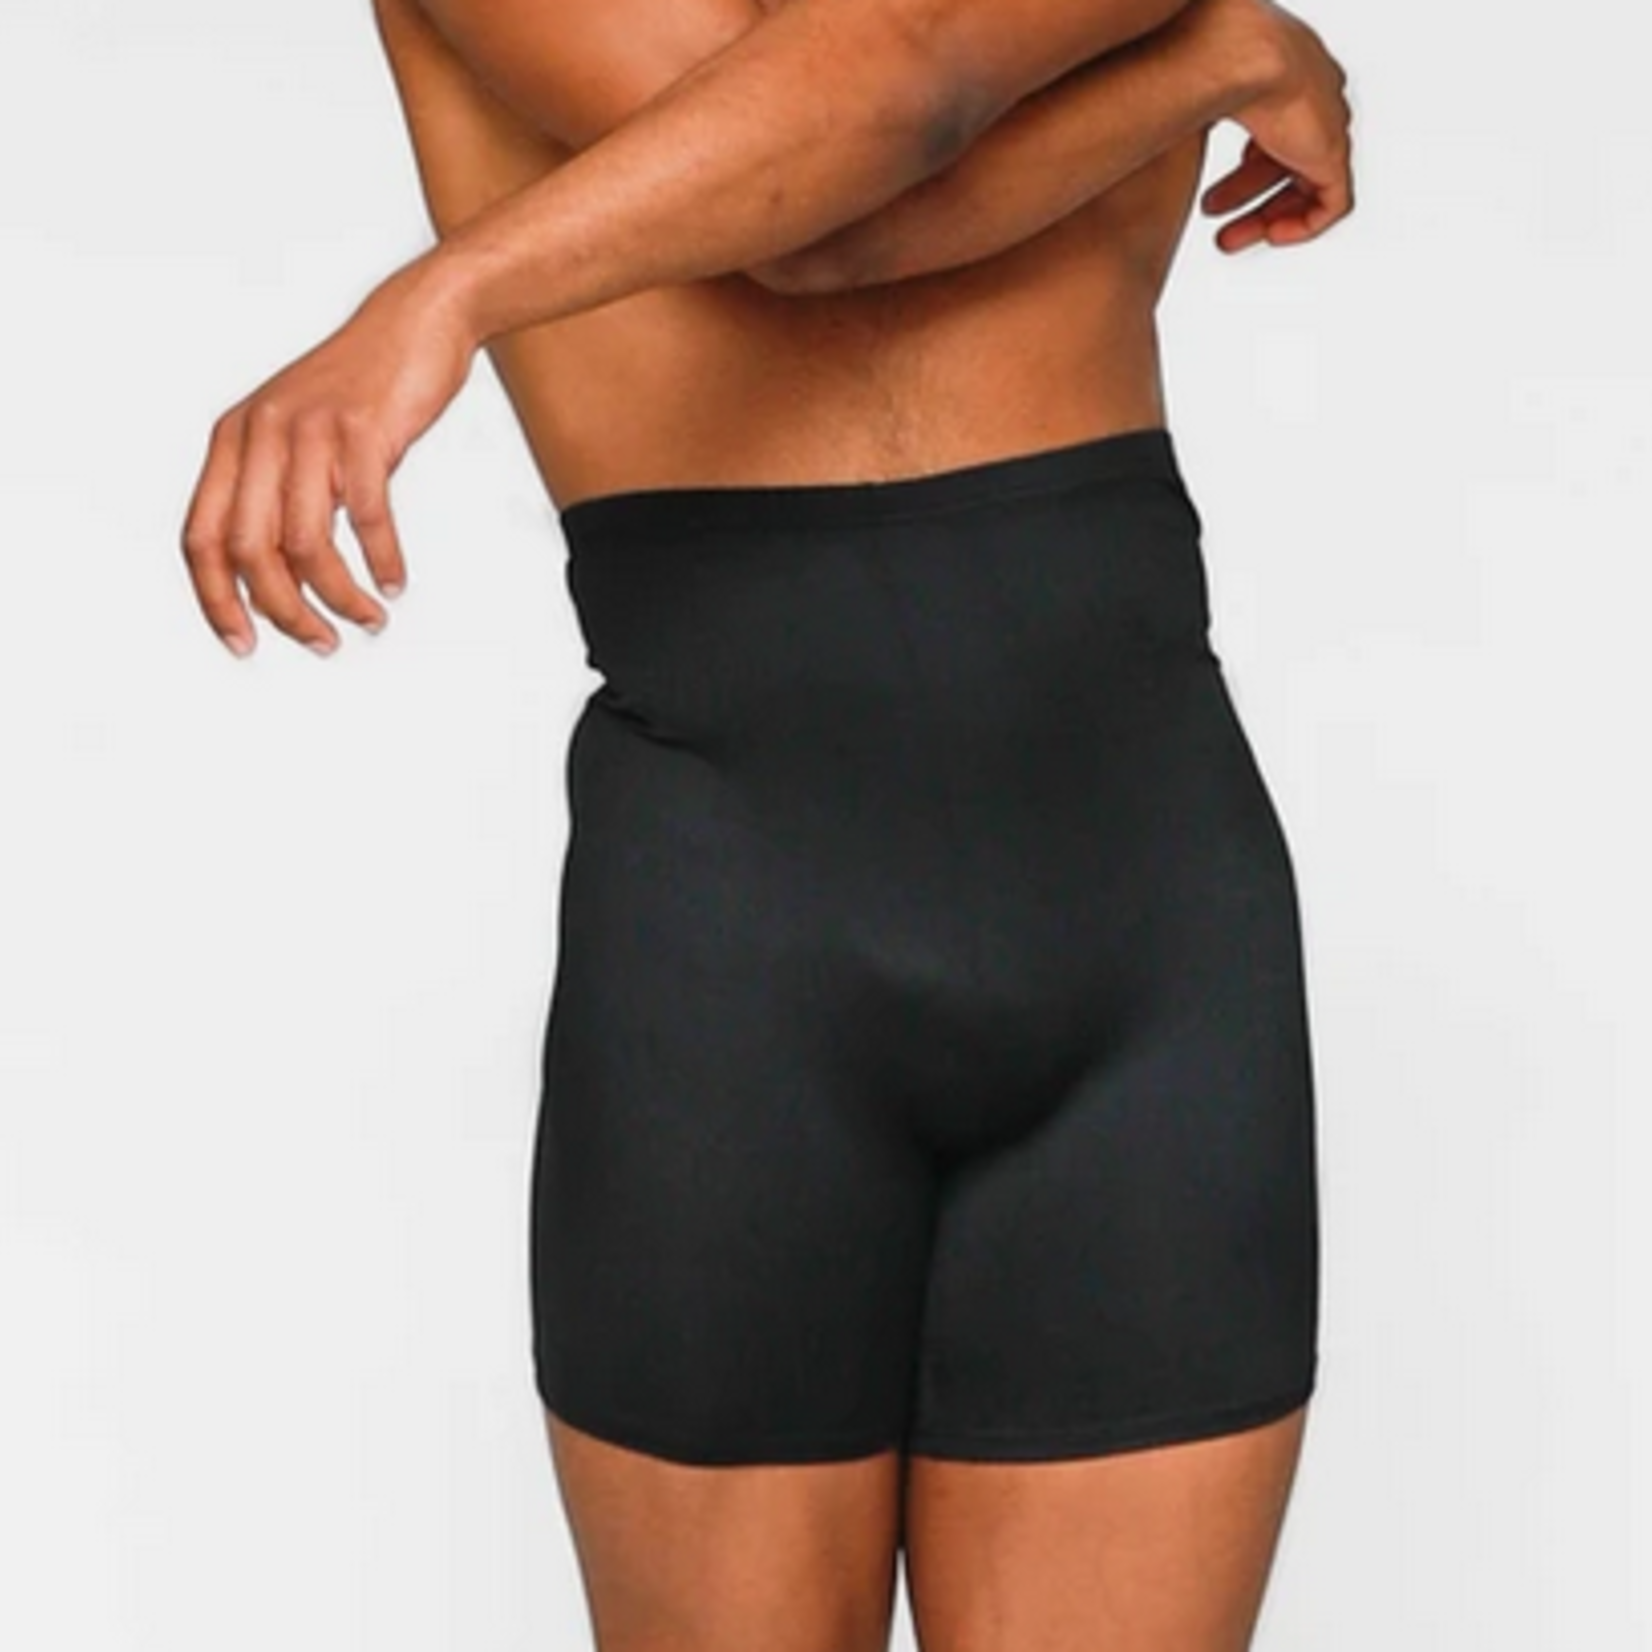 Body Wrappers Body Wrappers M192 Men's Shorts